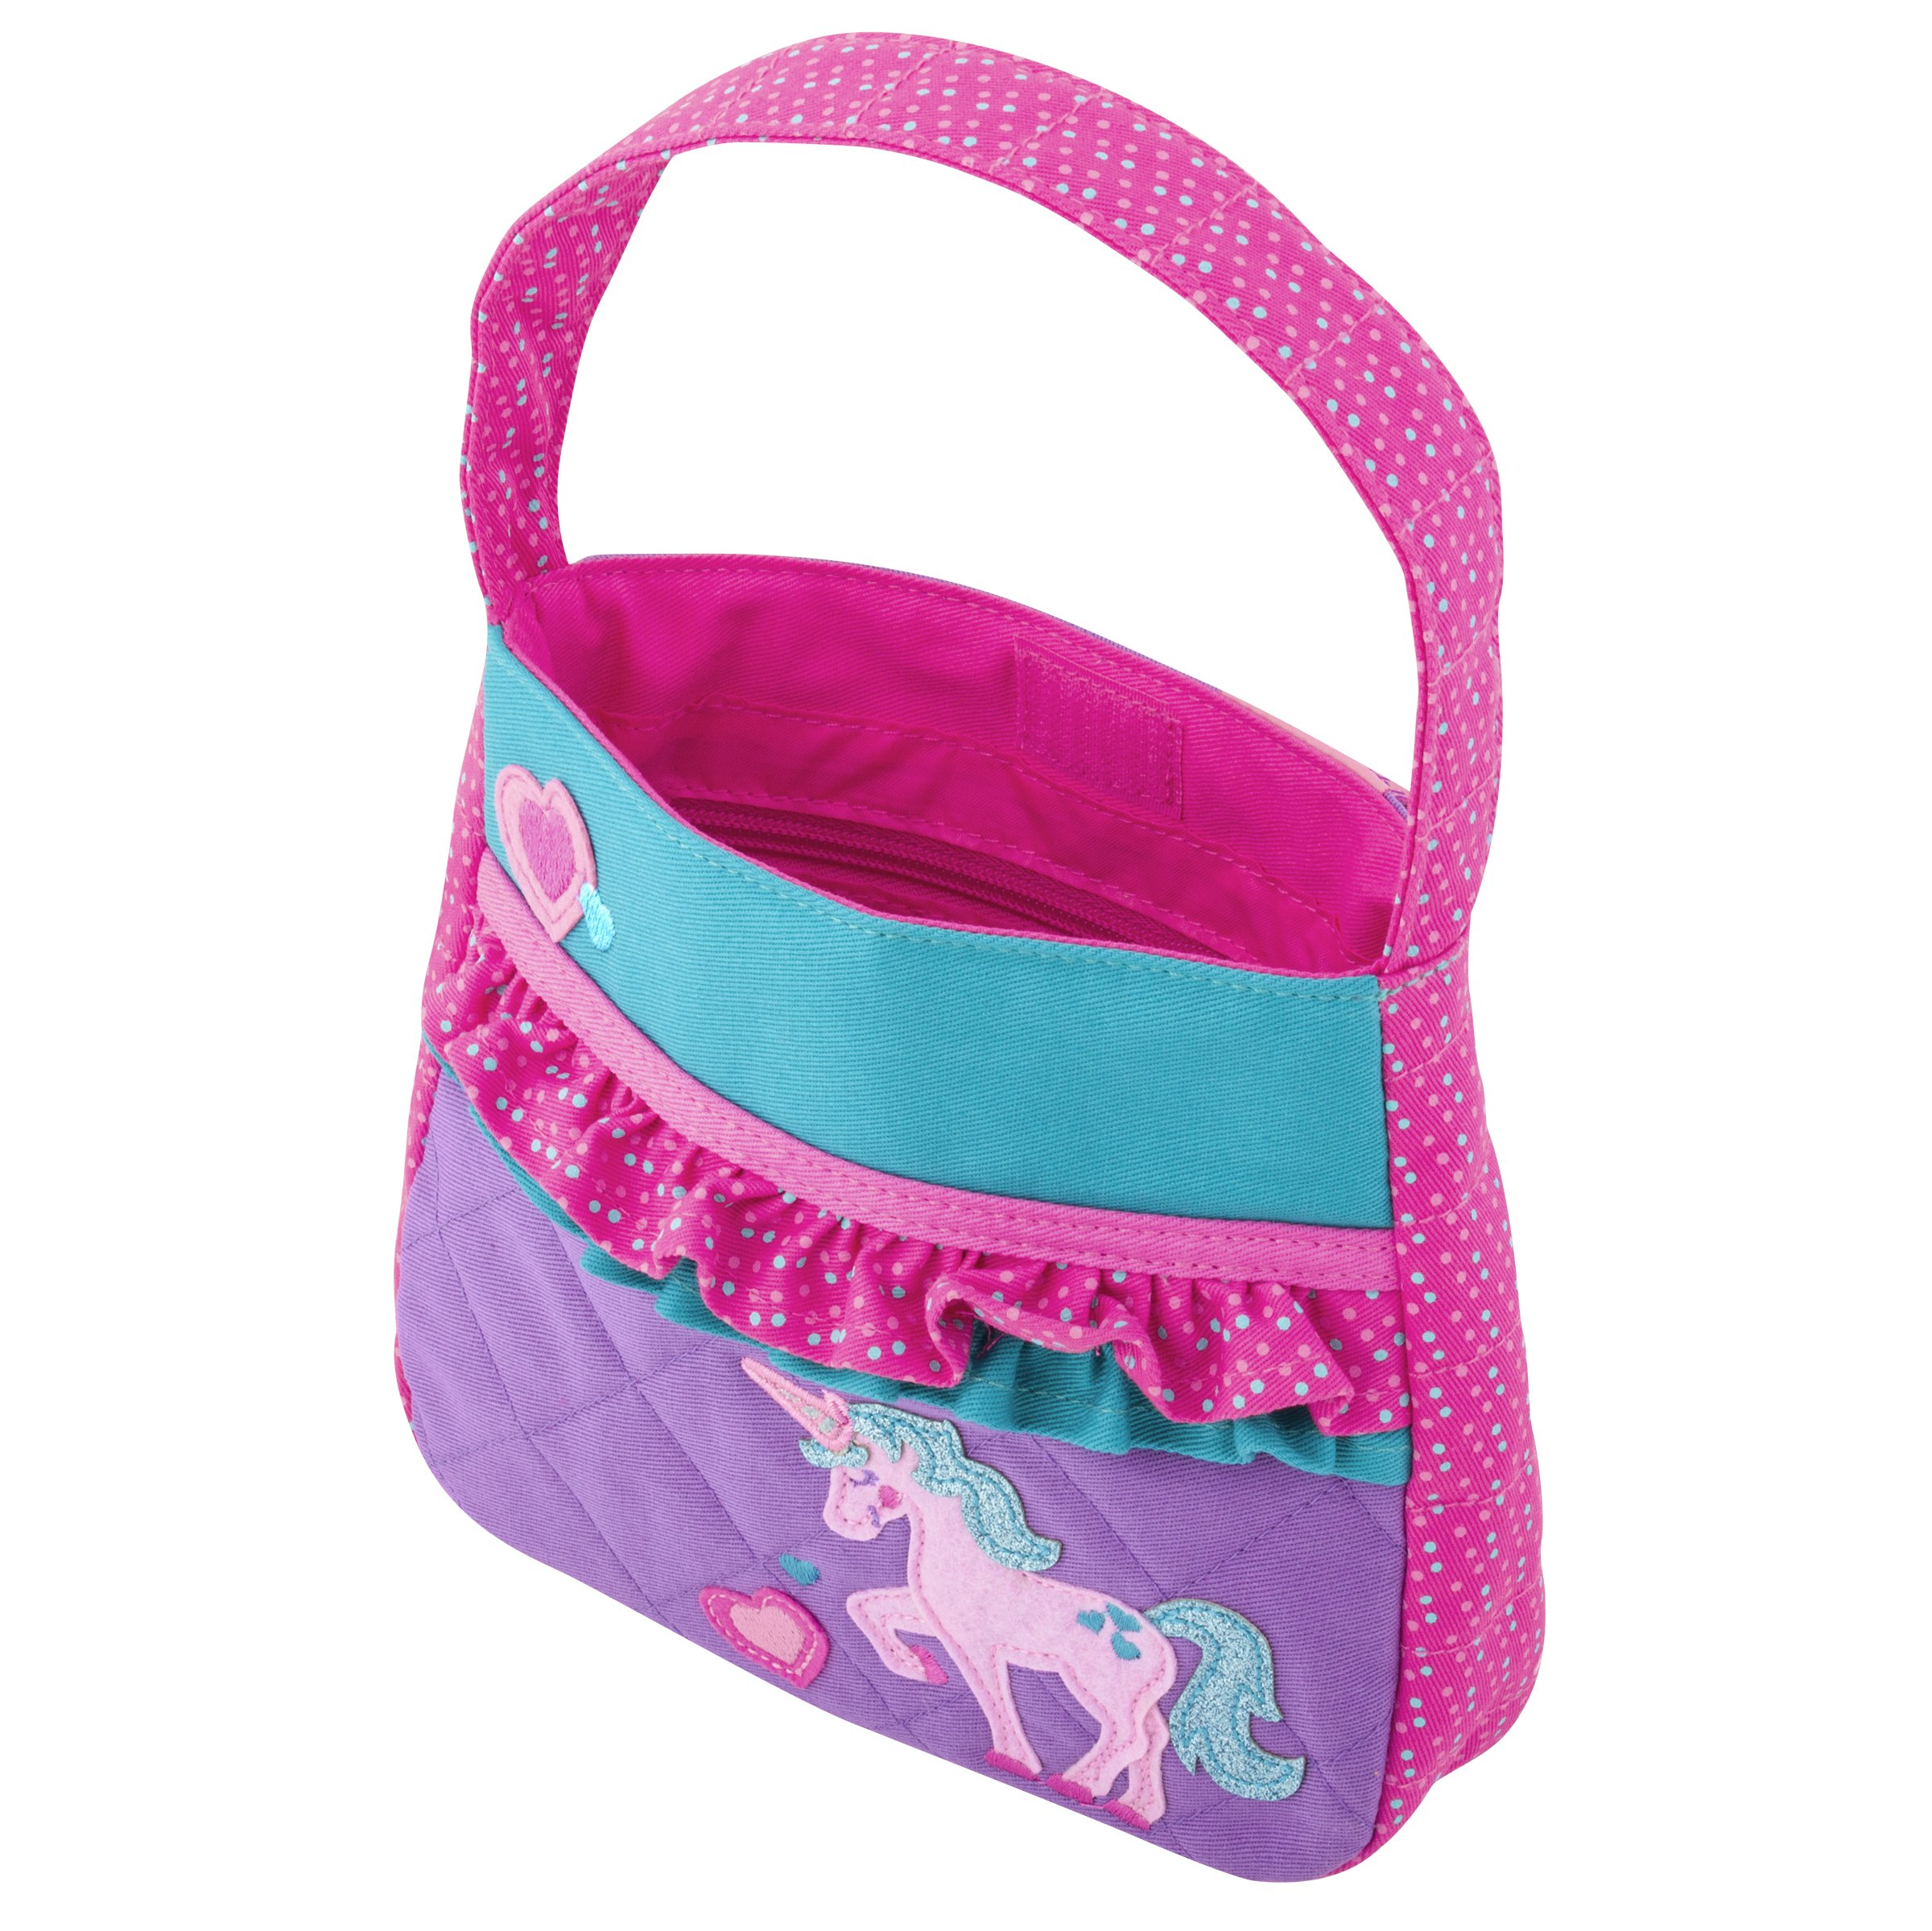 Stephen Joseph Little Girls' Quilted Purse, Unicorn, One Size by Stephen Joseph (Image #3)